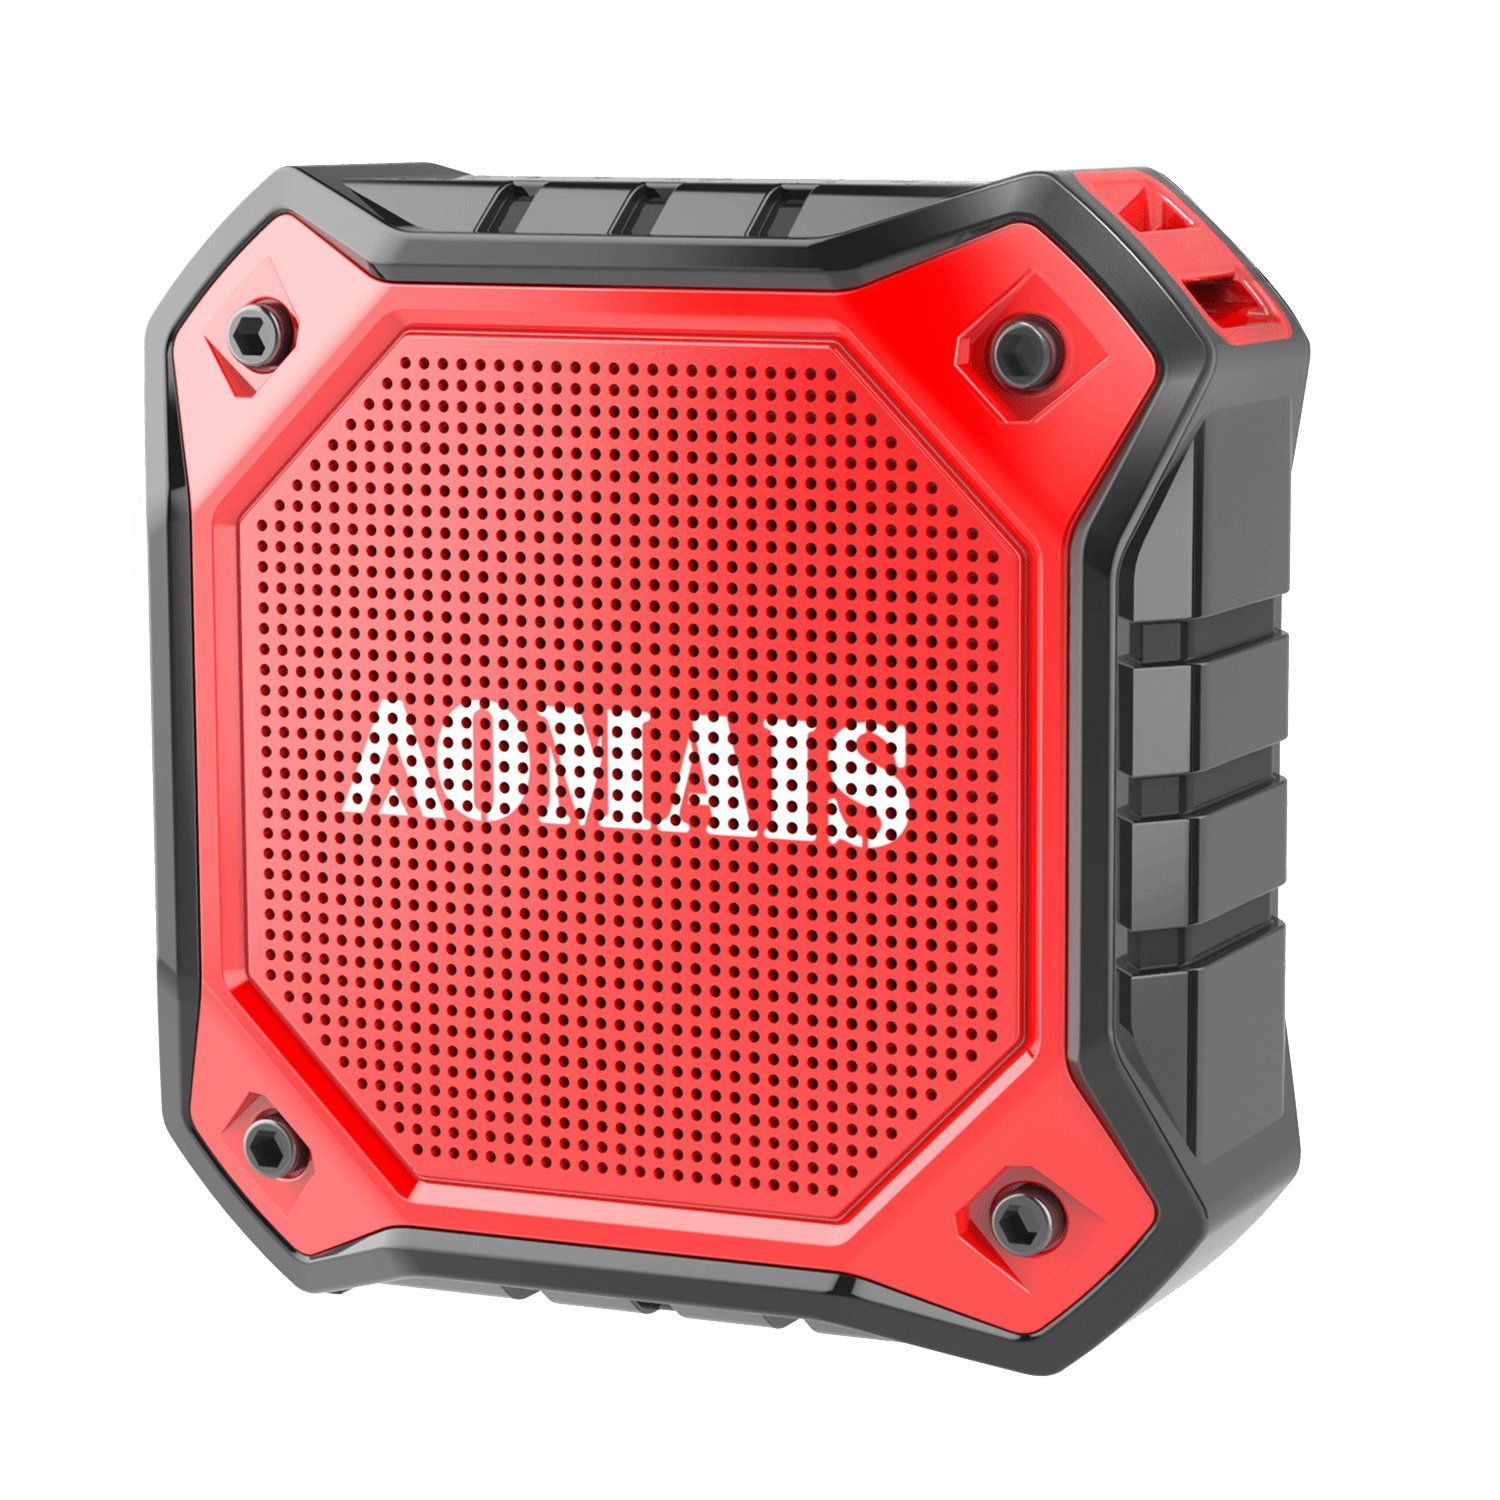 AOMAIS Ultra Portable Wireless Bluetooth Speakers 8W Loud Sound, Waterproof IPX7 Shower Speaker,Stereo Pairing Home Party, Outdoor, Beach, Travel (Red) by AOMAIS (Image #1)